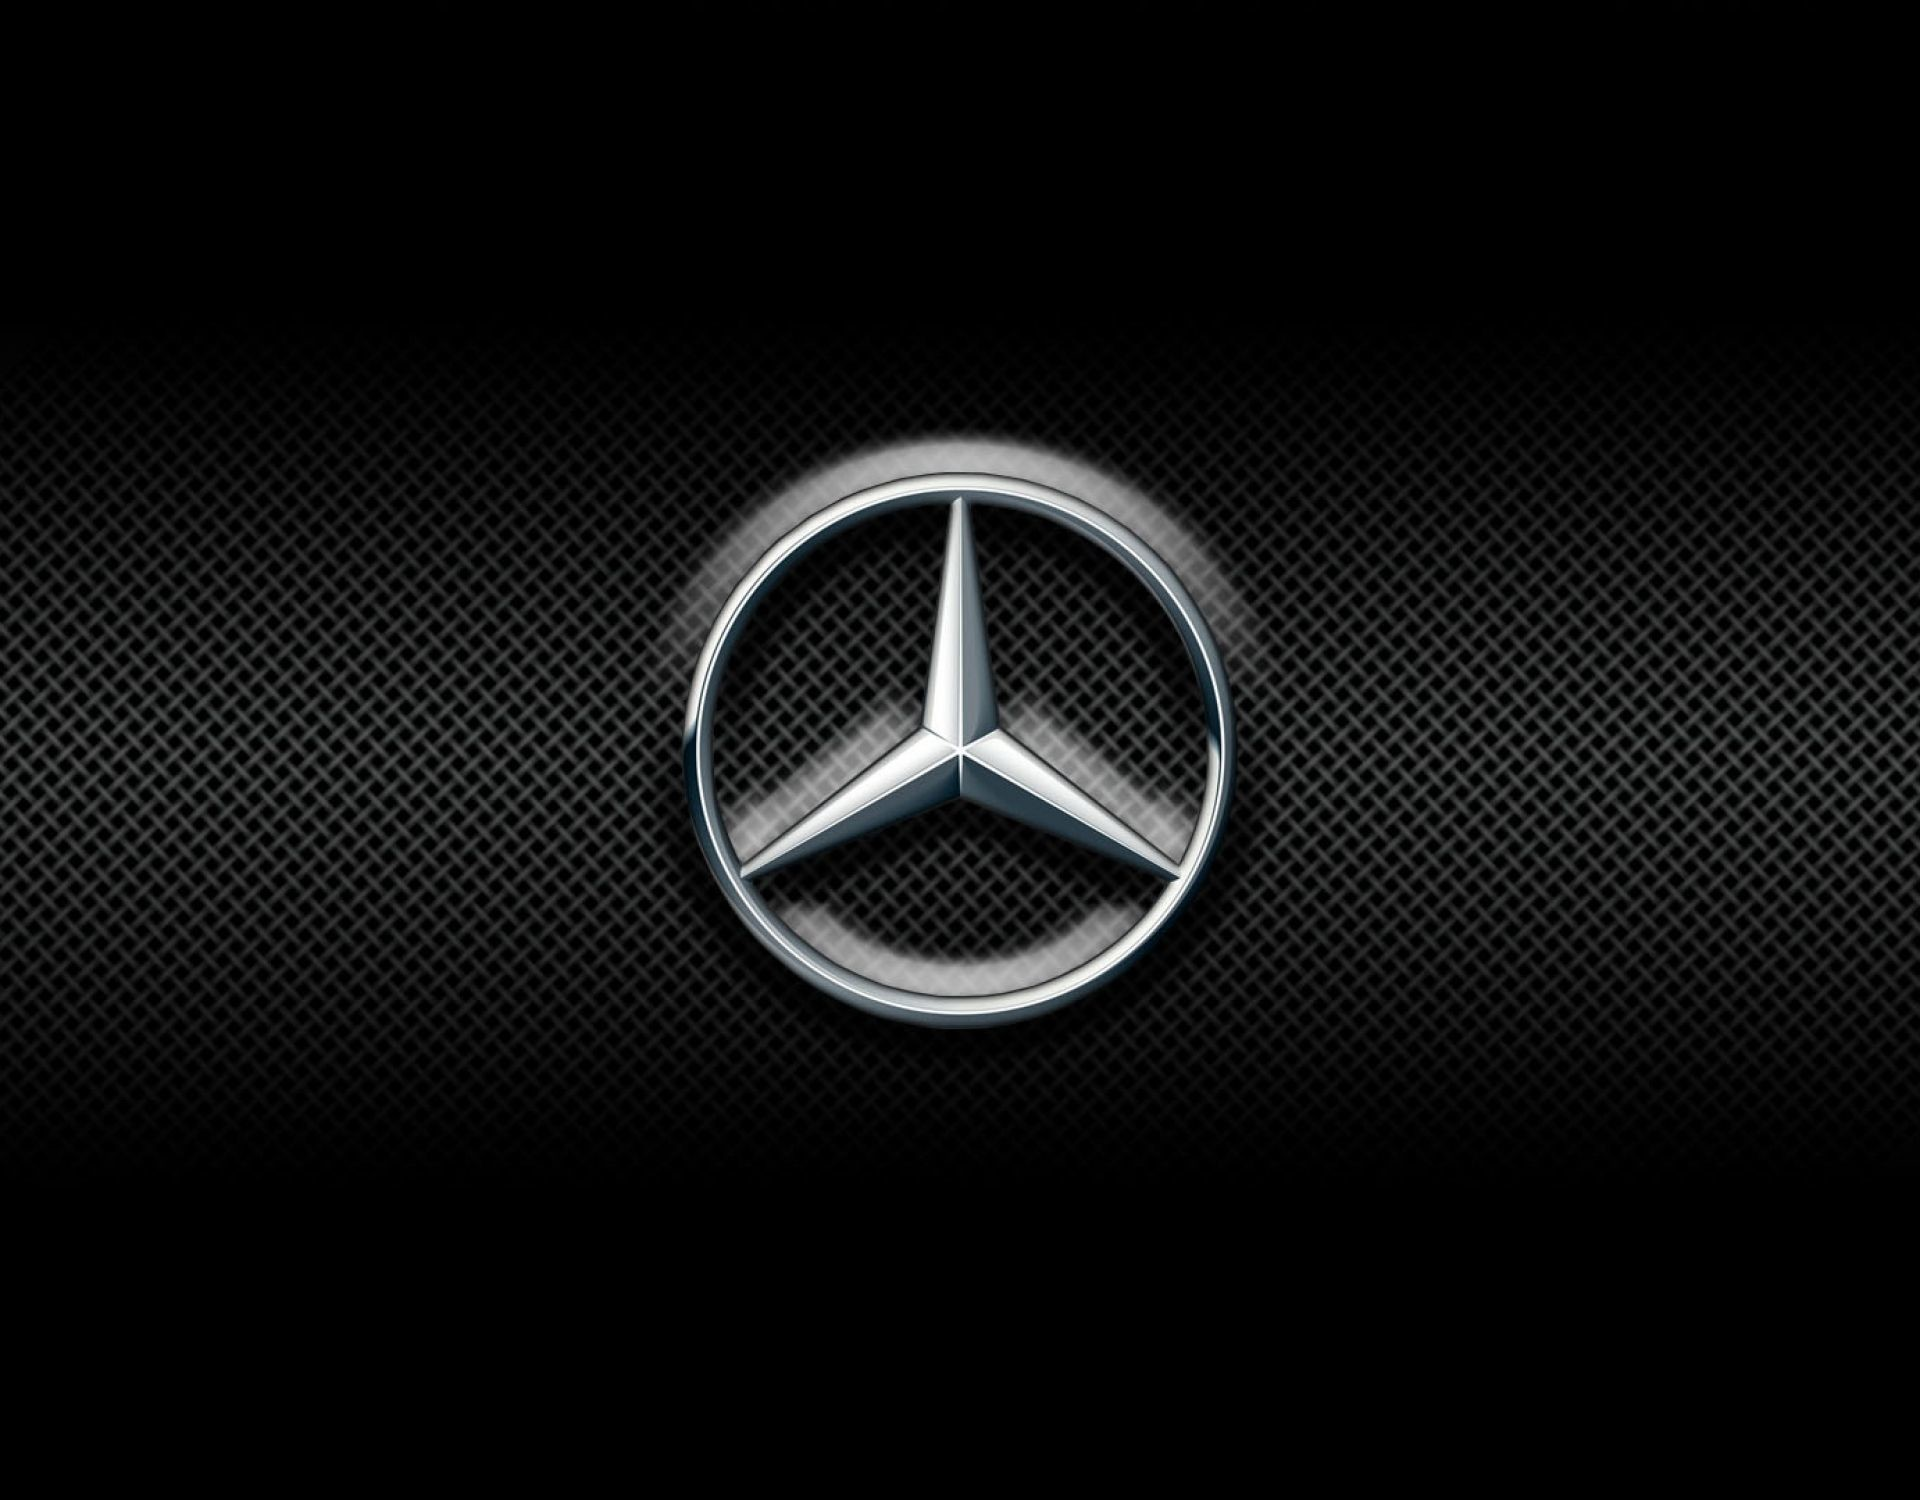 1920x1500 Mercedes Logo Wallpapers: Find best latest Mercedes Logo Wallpapers in HD  for your PC desktop background & mobile phones.